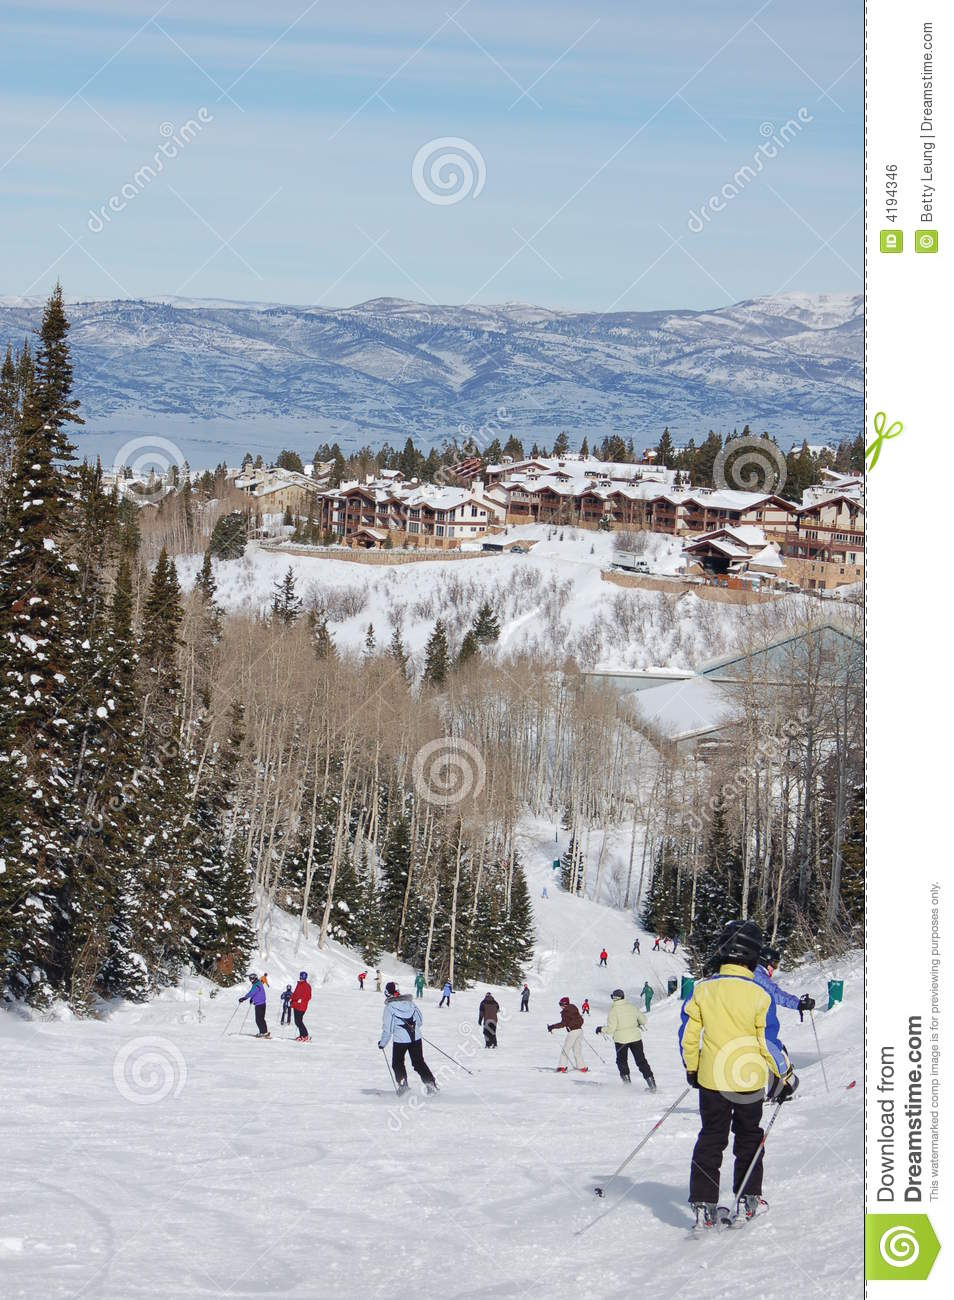 Winter vacation royalty free stock image image 4194346 for Vacation in the snow